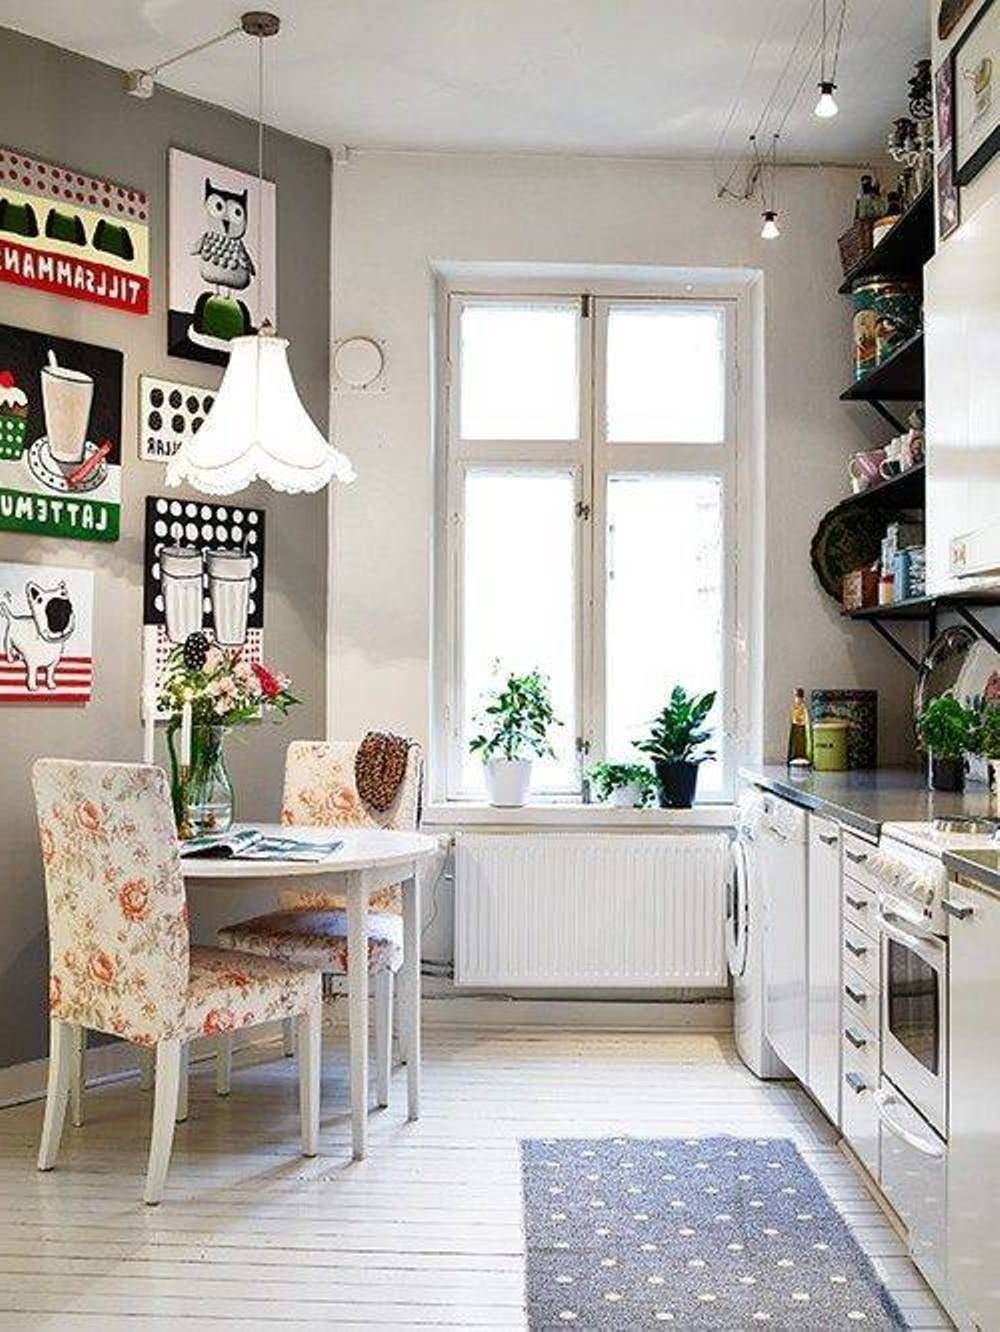 Invade Your Home Interior with Retro Style Appliance for Unique ...